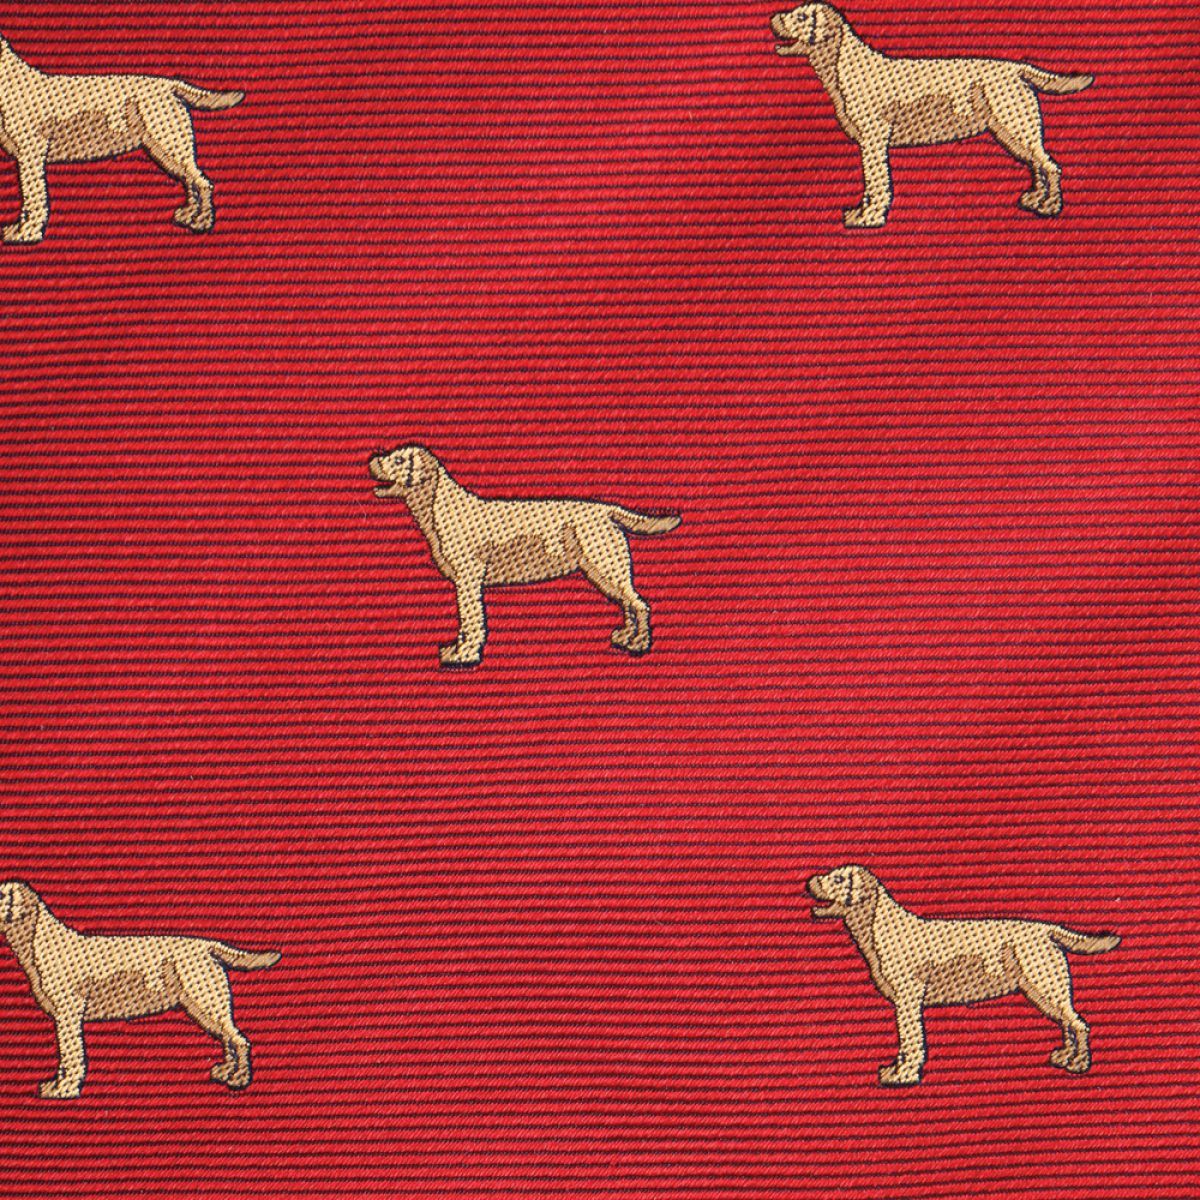 Woven Yellow Lab Gent - Red